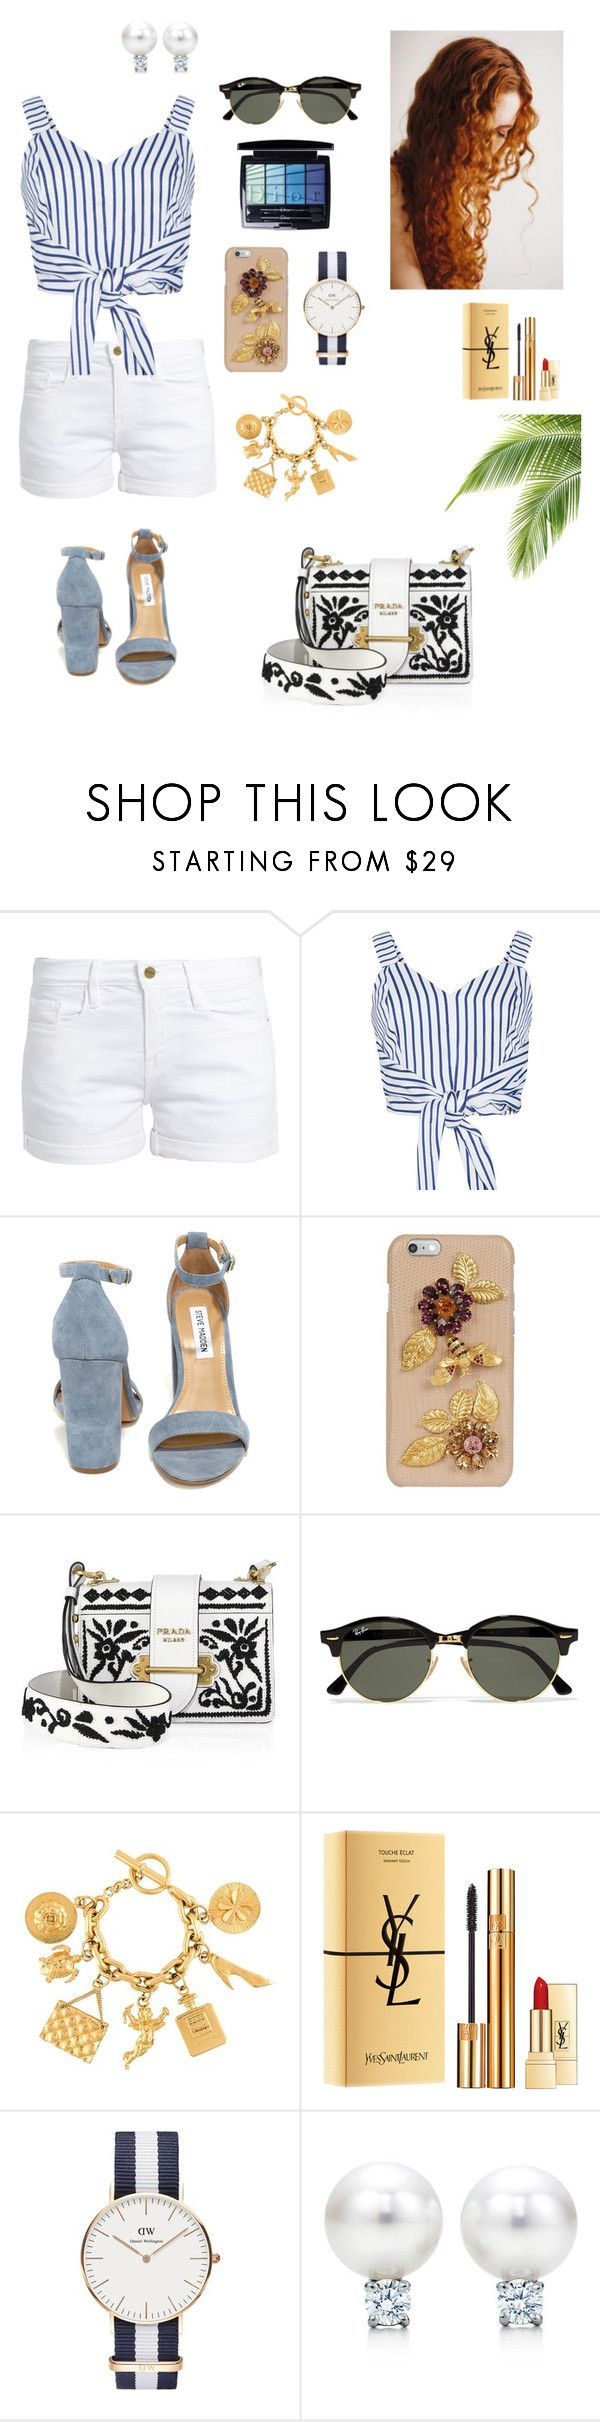 """""""#205"""" by tamara-wolfram ❤ liked on Polyvore featuring Frame, WithChic, Steve Madden, Dolce&Gabbana, Prada, Ray-Ban, Chanel, Yves Saint Laurent, Daniel Wellington and Christian Dior"""